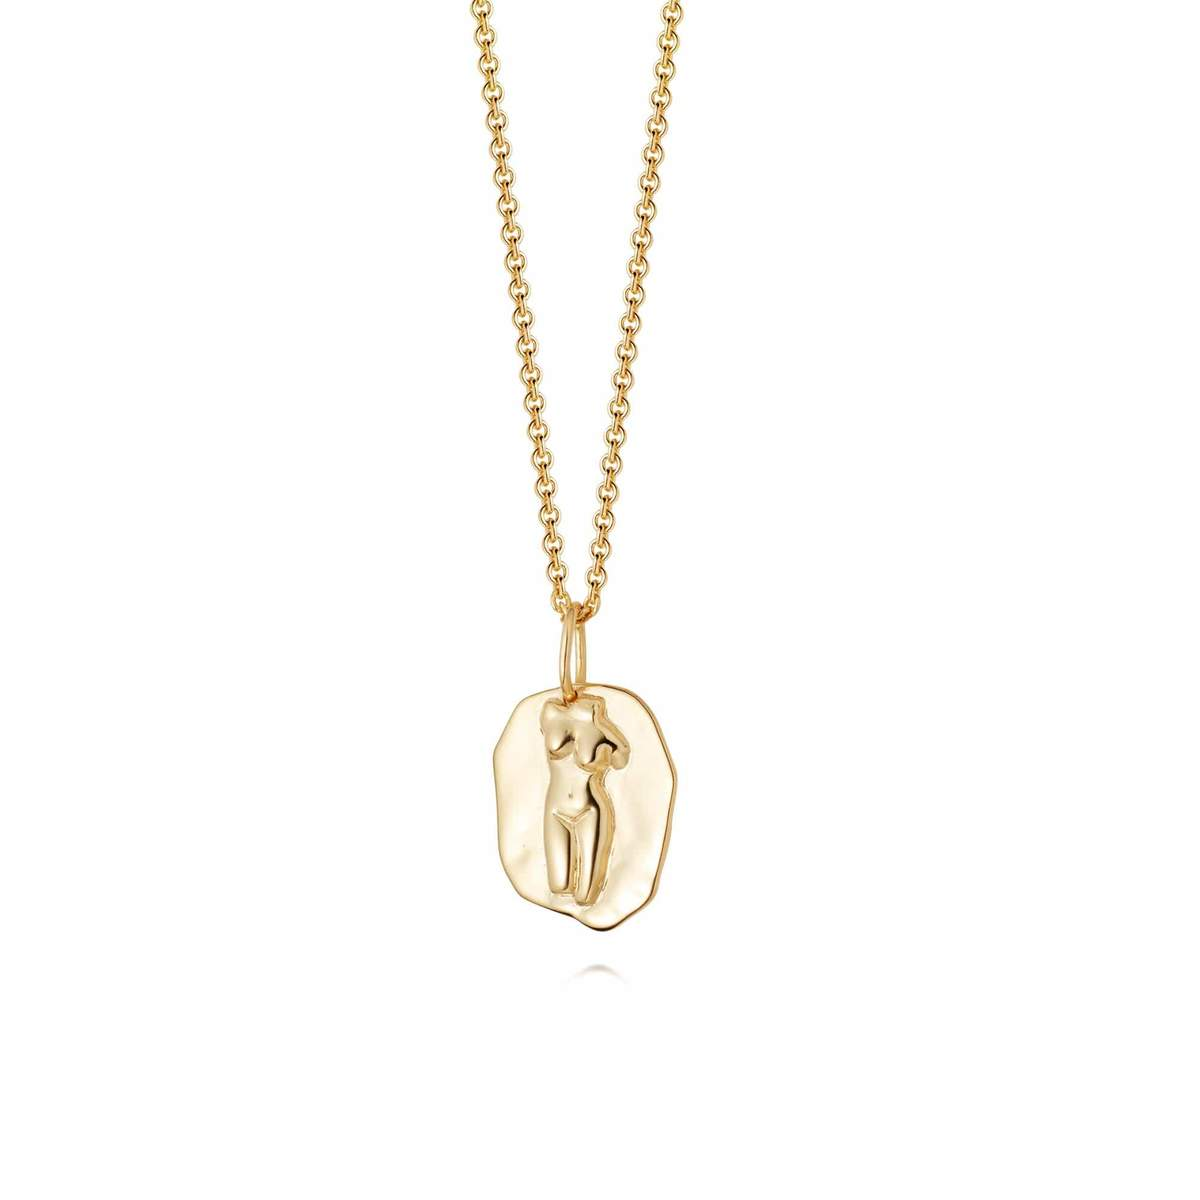 APHRODITE NECKLACE - 18CT GOLD PLATE